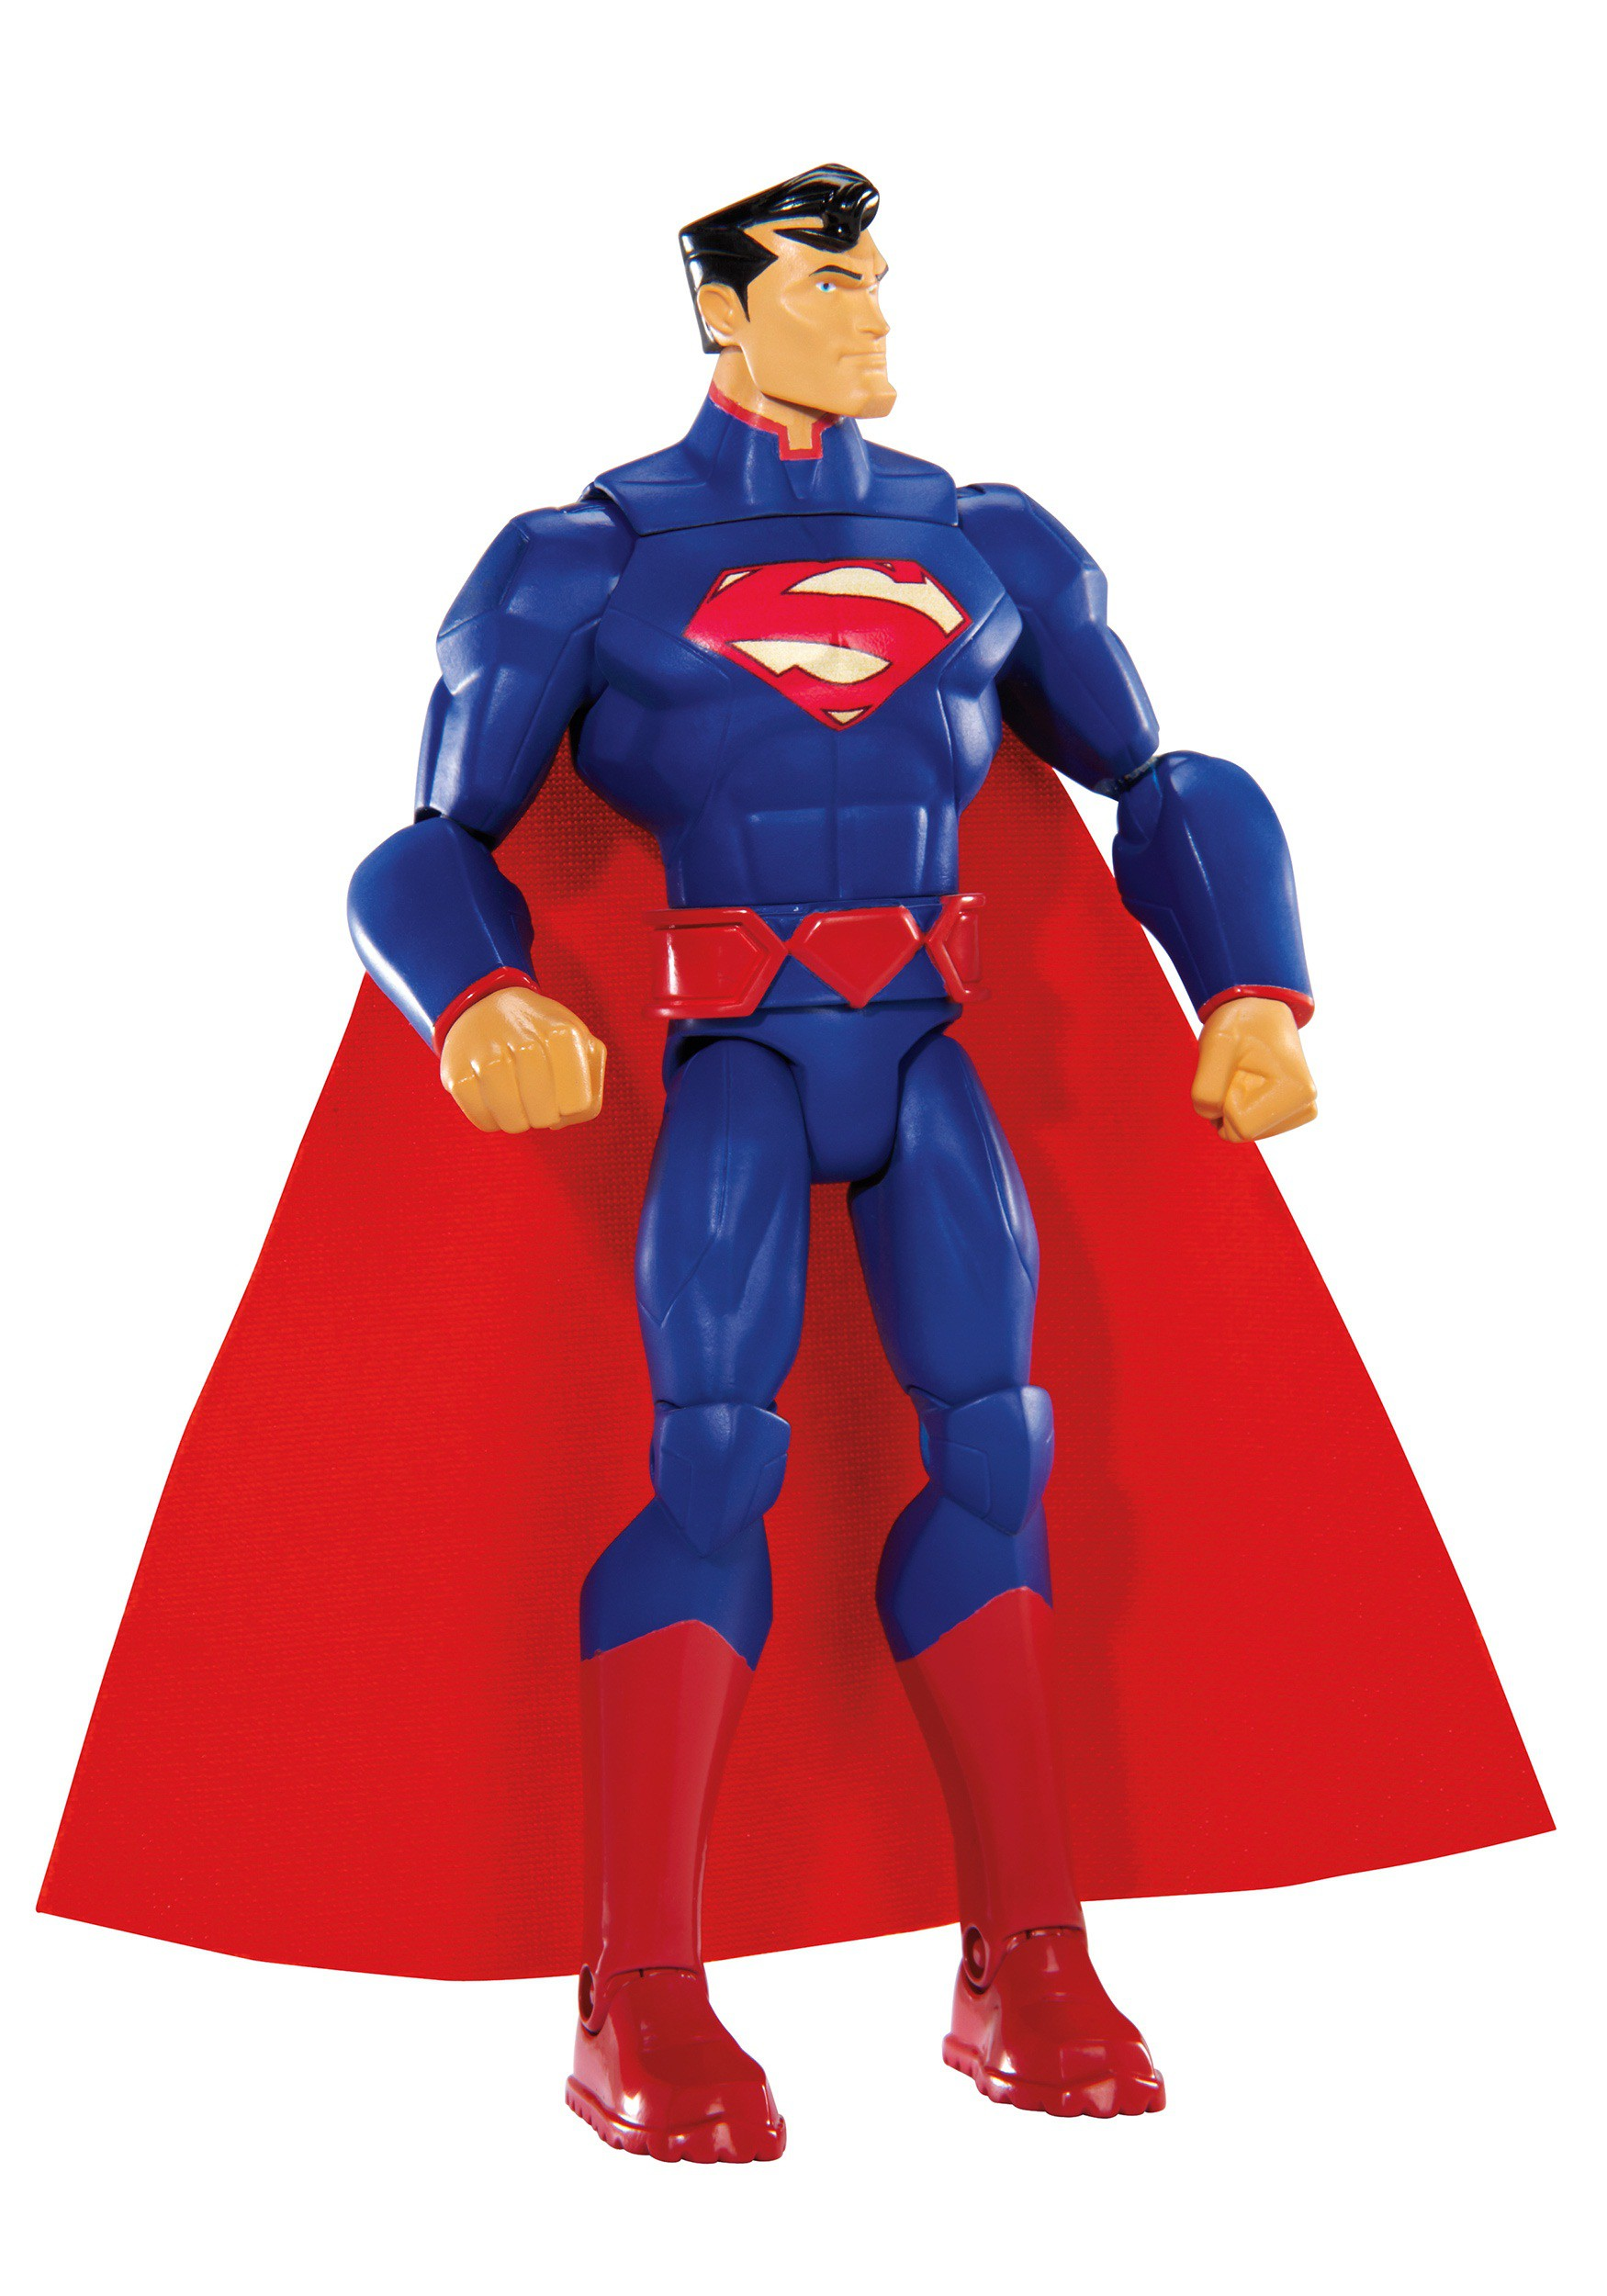 Total Heroes Superman Figure MLBHD46